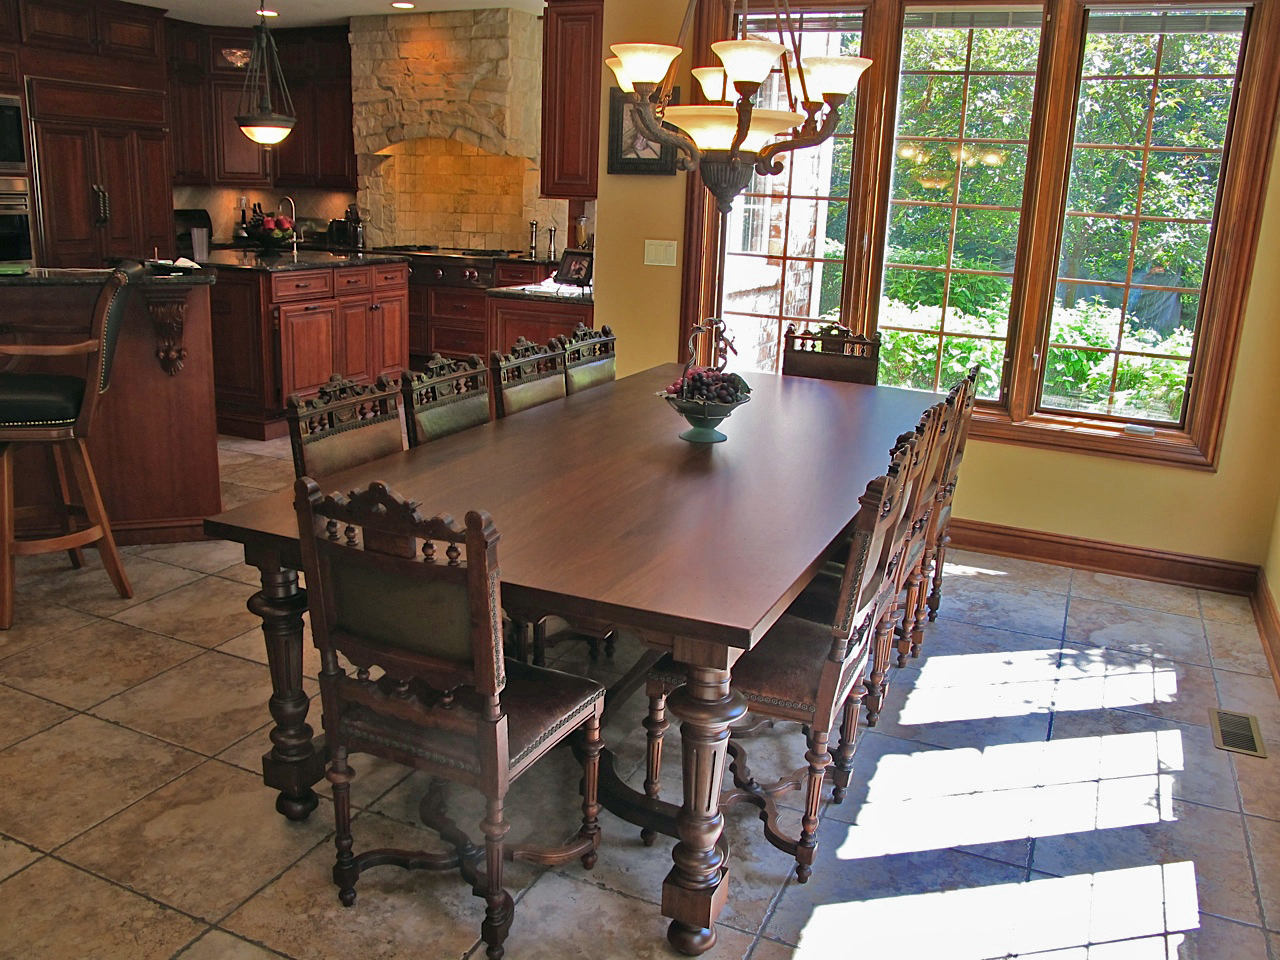 Antique inspirations in our client's French Renaissance kitchen.  Chairs from EuroLuxAntiques.com